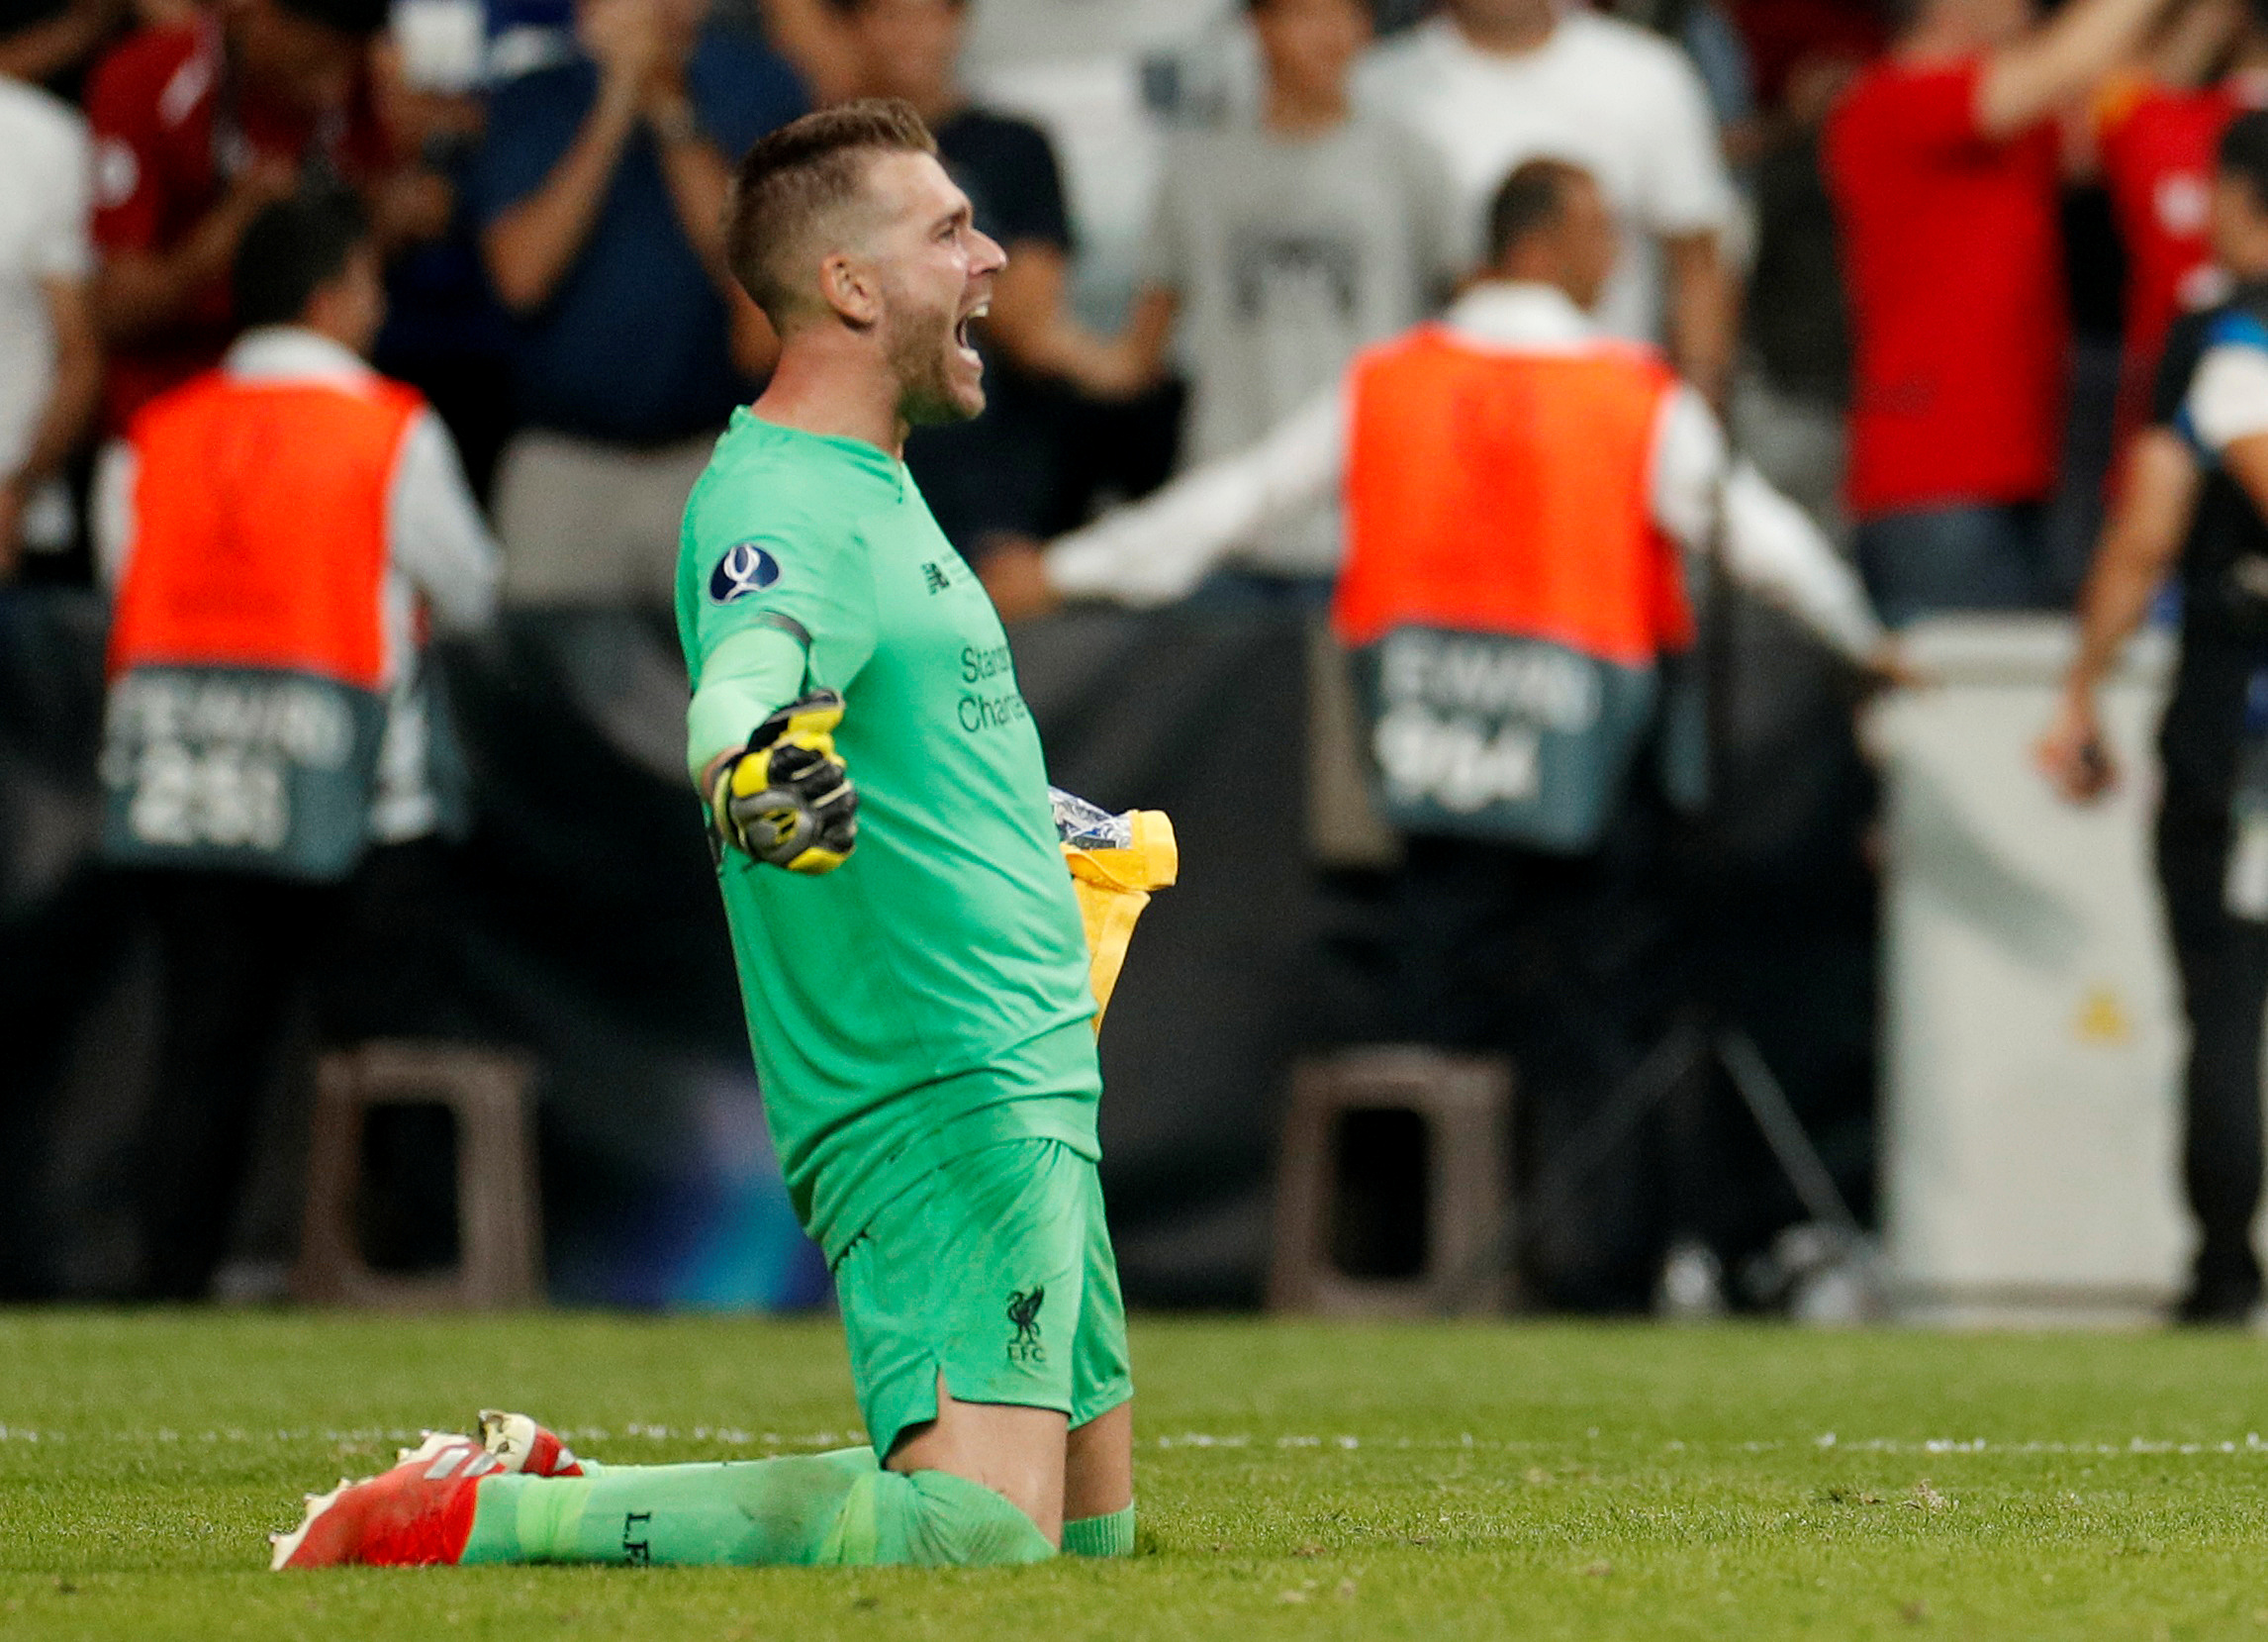 Soccer Football - UEFA Super Cup - Liverpool v Chelsea - Vodafone Arena, Istanbul, Turkey - August 14, 2019  Liverpool's Adrian celebrates winning the UEFA Super Cup after saving the decisive penalty in the penalty shootout taken by Chelsea's Tammy Abraham   Action Images via Reuters/John Sibley - RC1F5DB63DD0